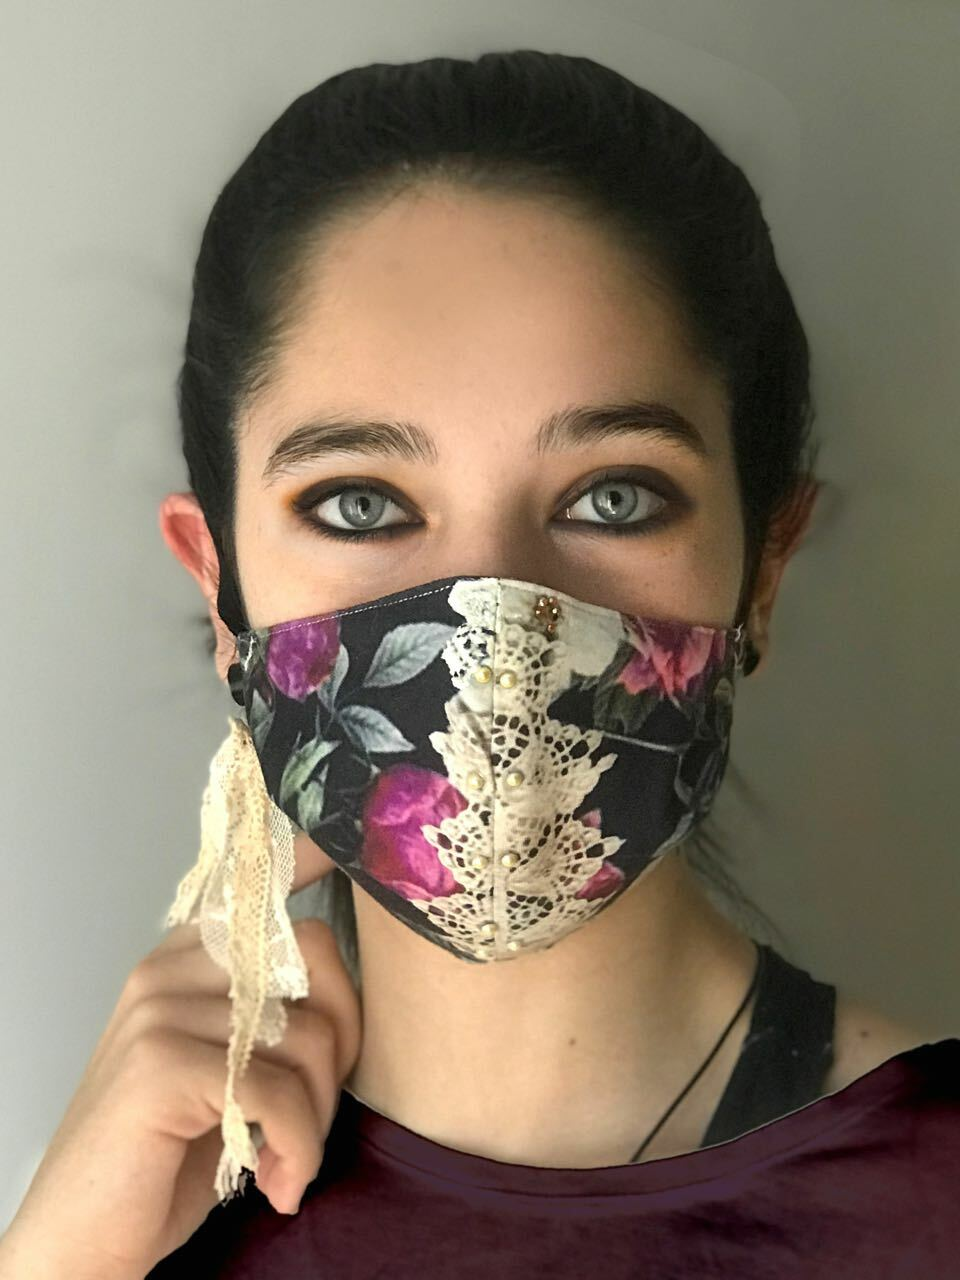 IPNG: Gingham Rose Fairytale Mask IPNG_MA3_GINGHAM_ROSE